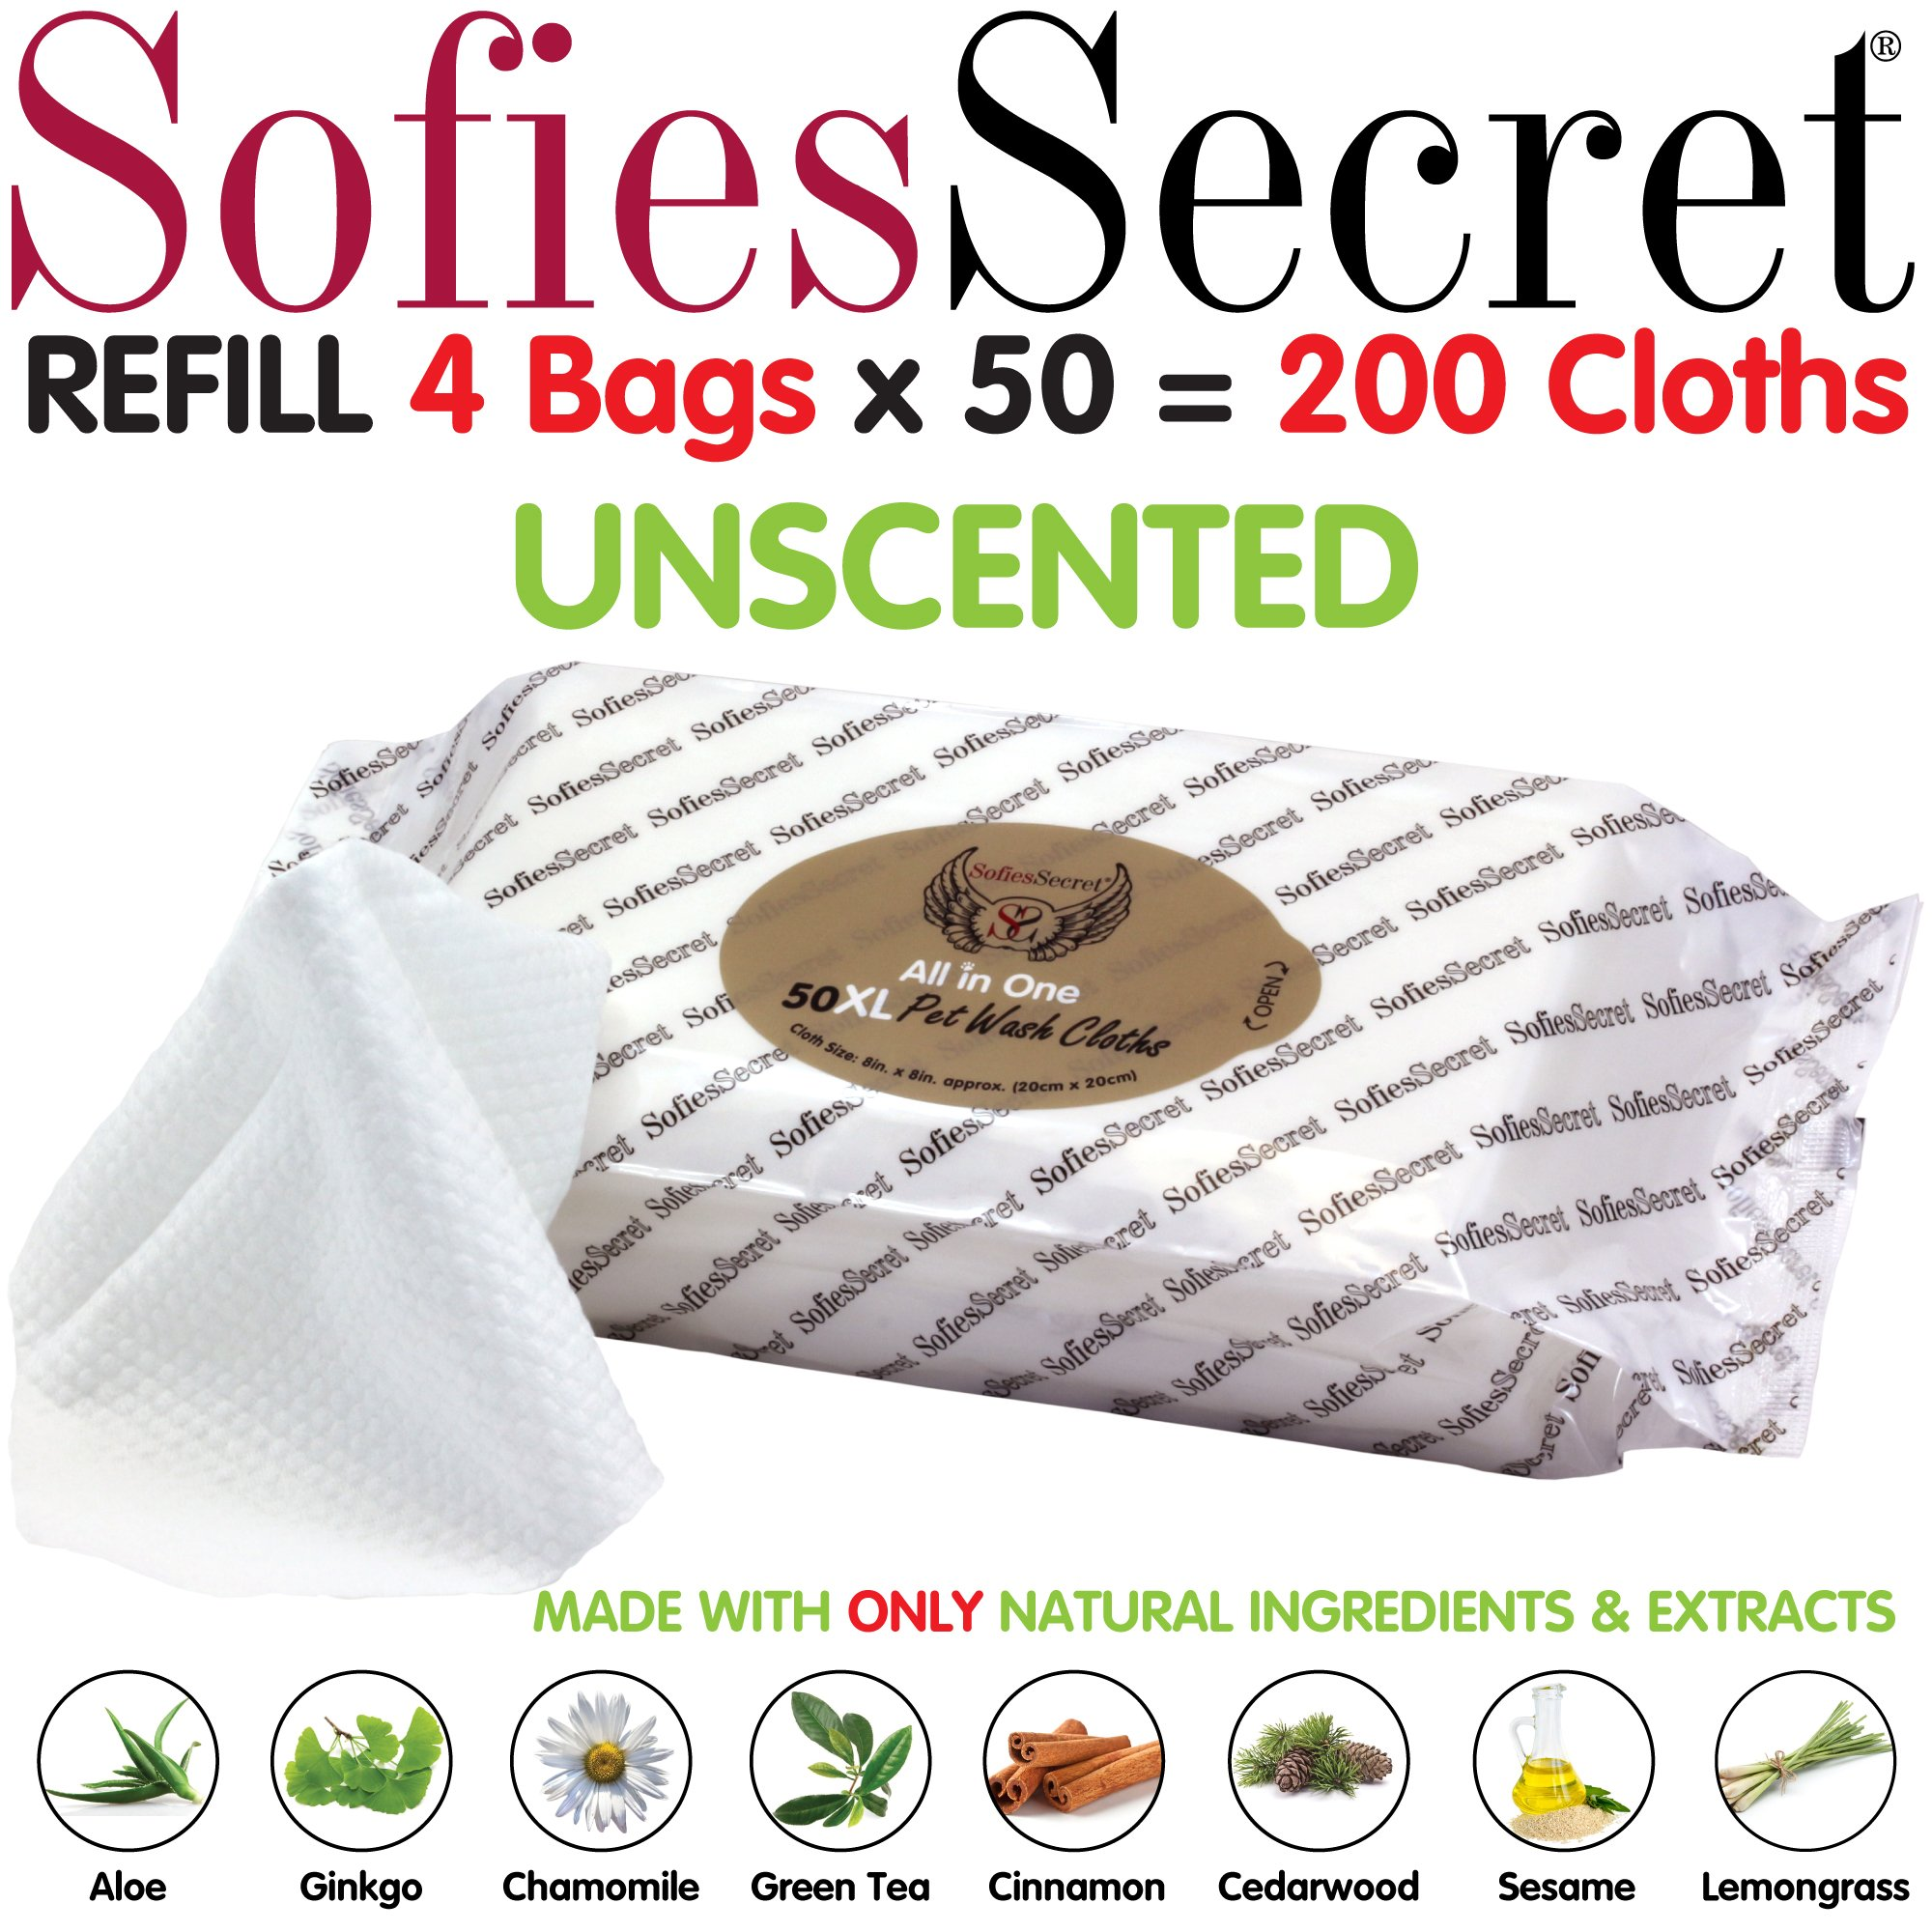 SofiesSecret XL PET Wipes, 200 Seets Refill, All in One Grooming, for Paws, Coat, Skin, Face, Ears and Teeth, Made with only Naturally derived Ingredients, Oils & Extra, Cruelty Free and Vegan by SofiesSecret